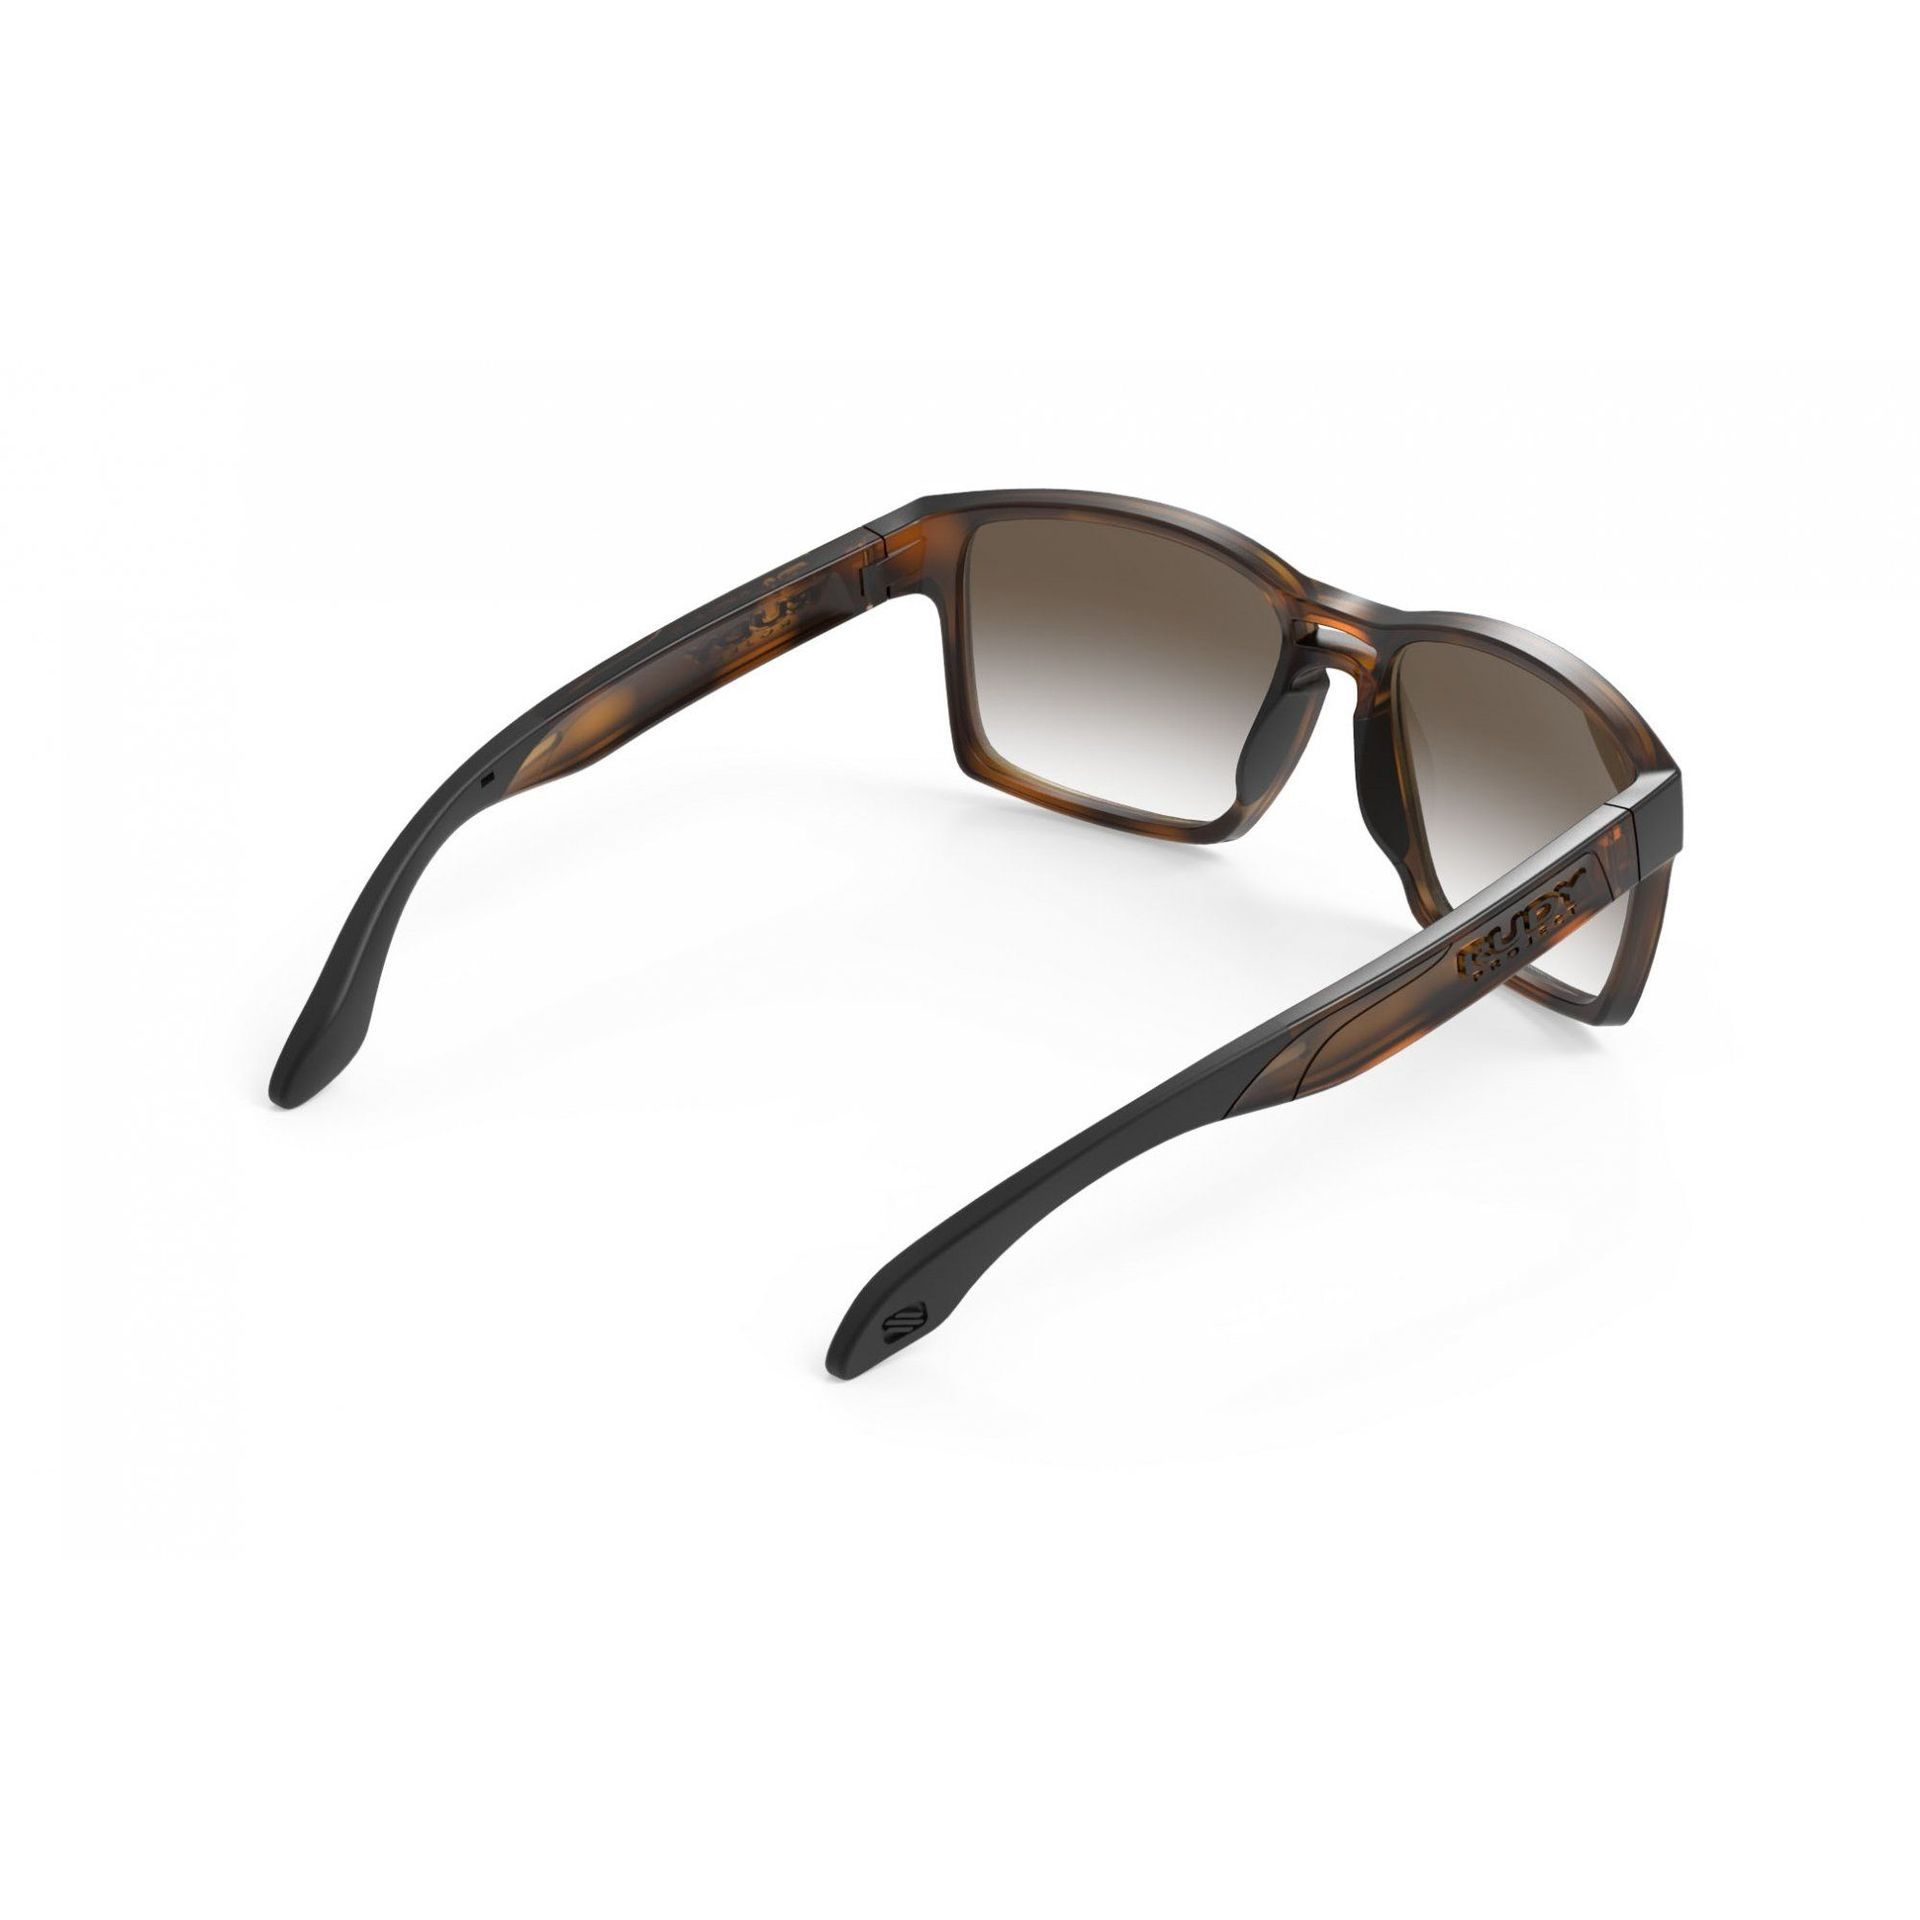 OKULARY RUDY PROJECT SPINAIR 57 DEMI TURTLE + BROWN DEG SP573650 5